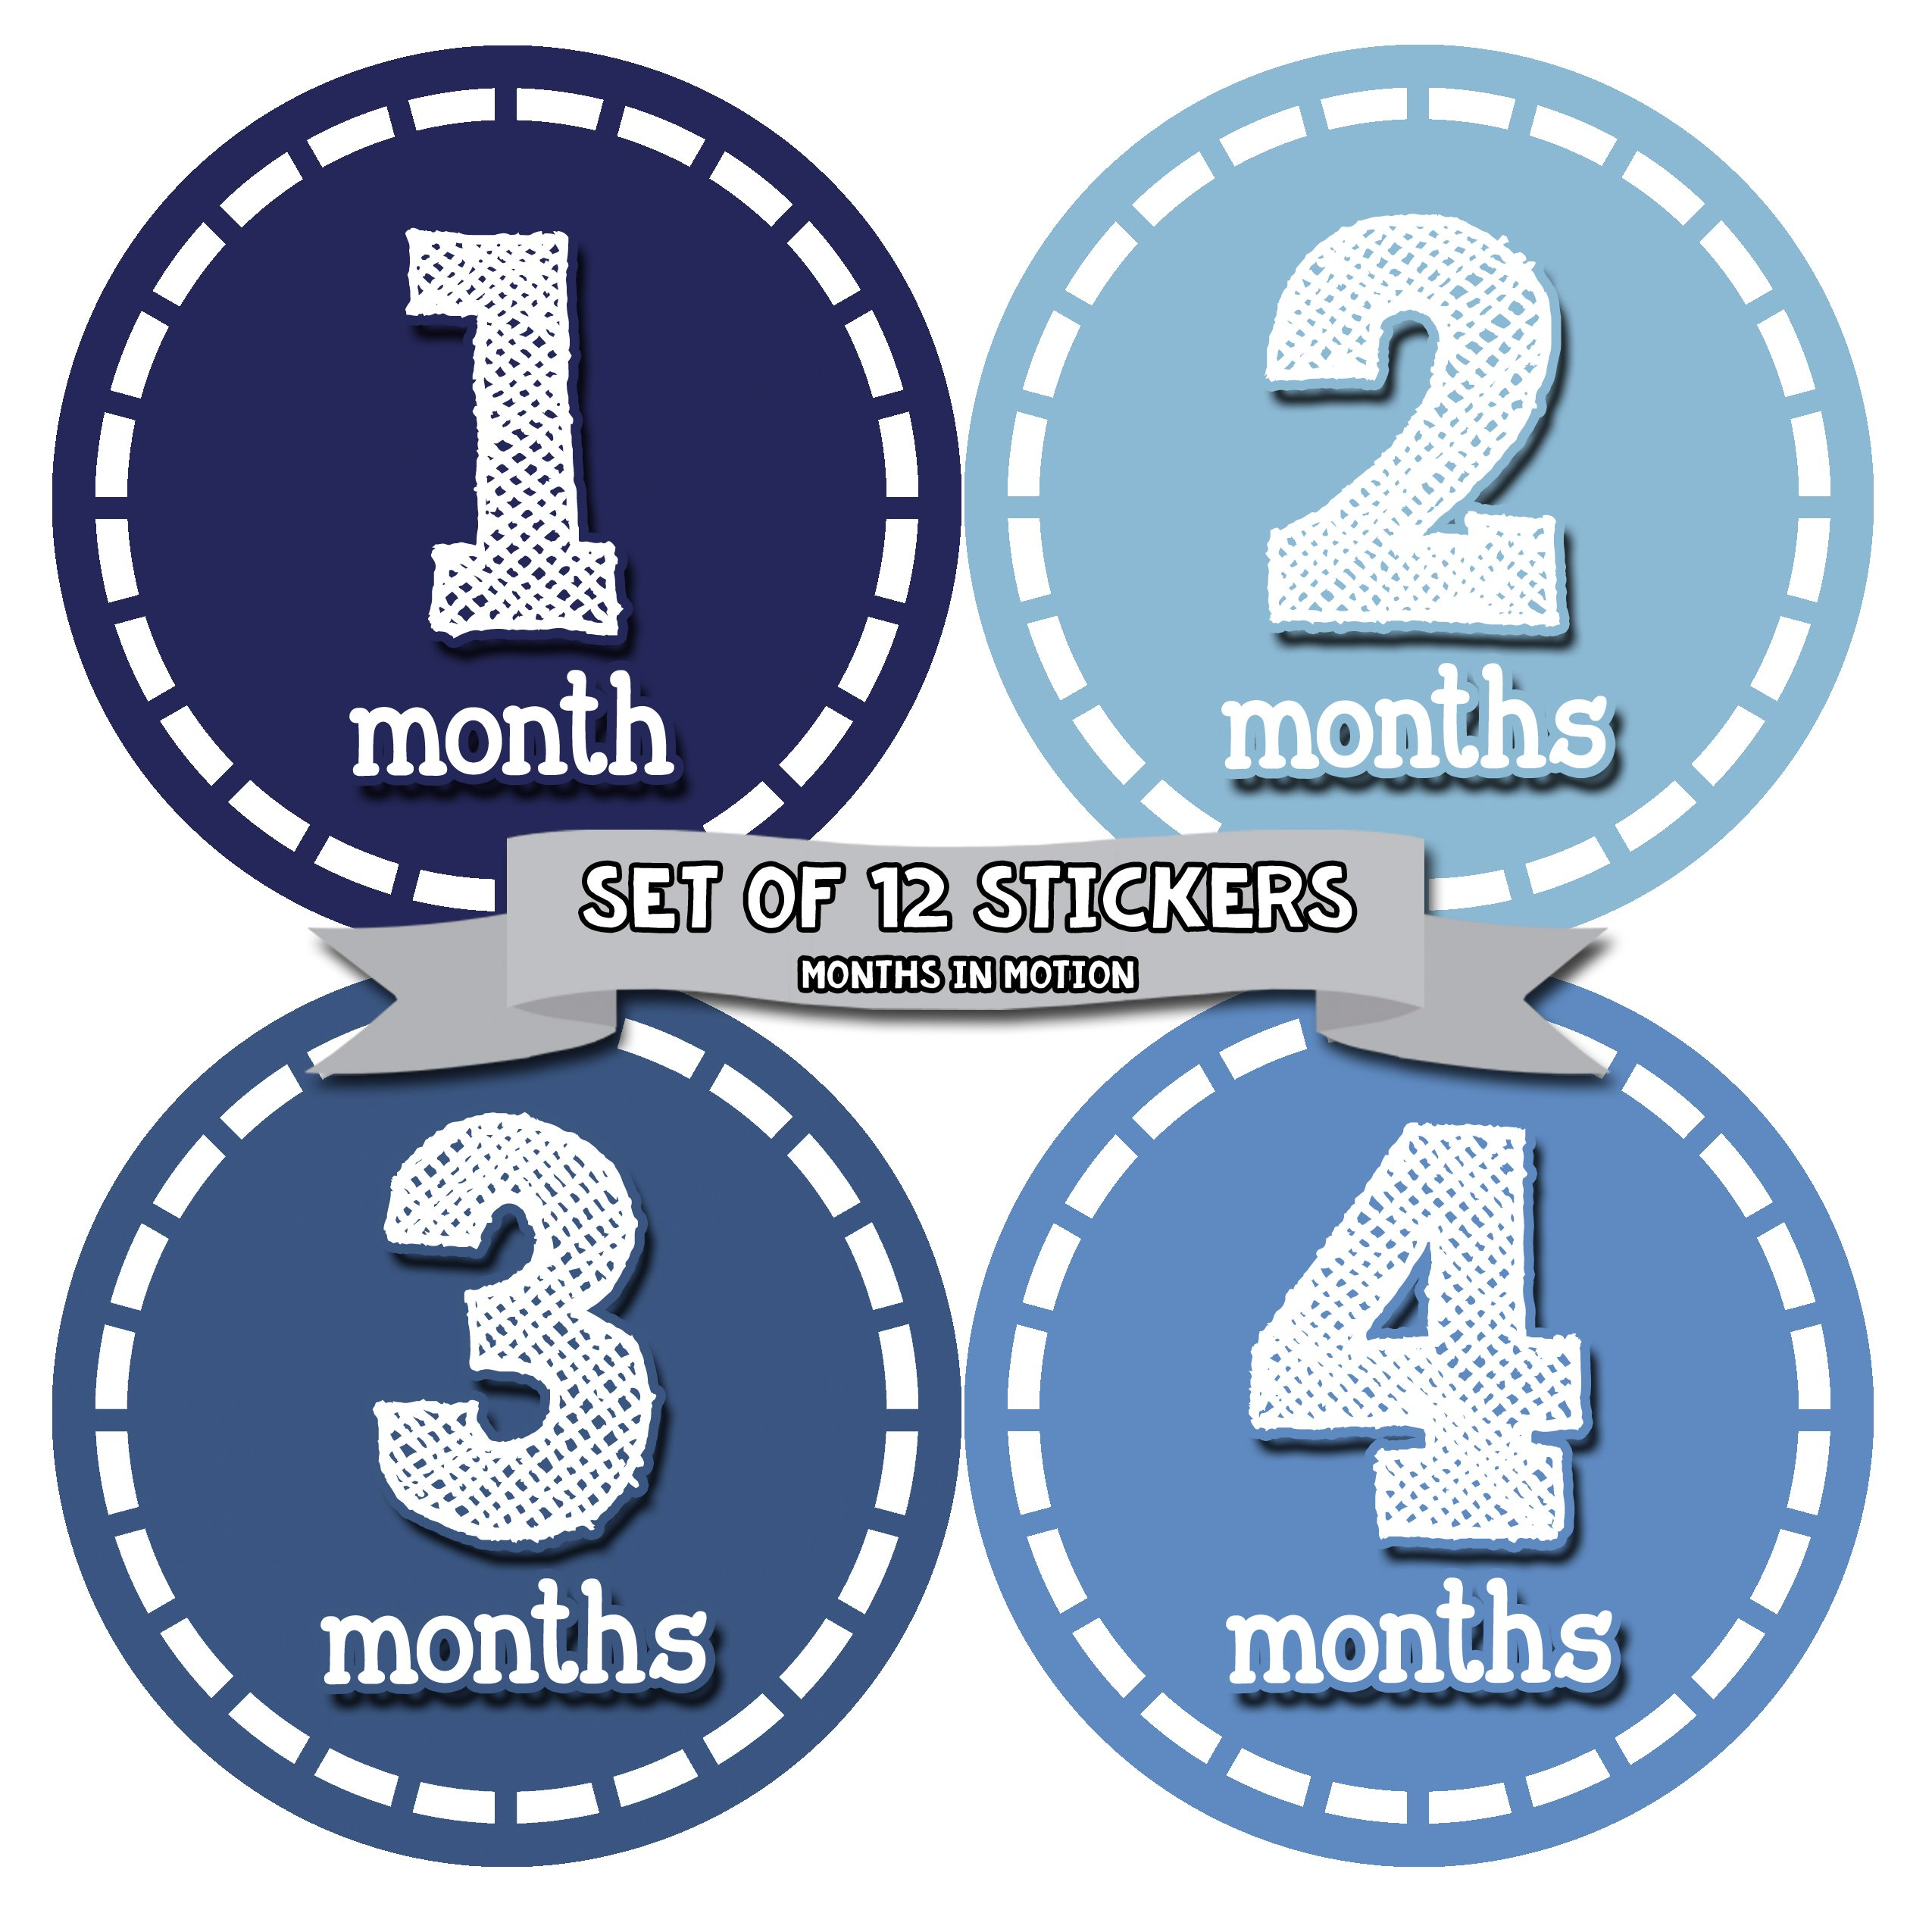 Months In Motion Baby Monthly Stickers - Baby Milestone Stickers - Newborn Boy Stickers - Month Stickers for Baby Boy - Baby Boy Stickers - Newborn Monthly Milestone Stickers